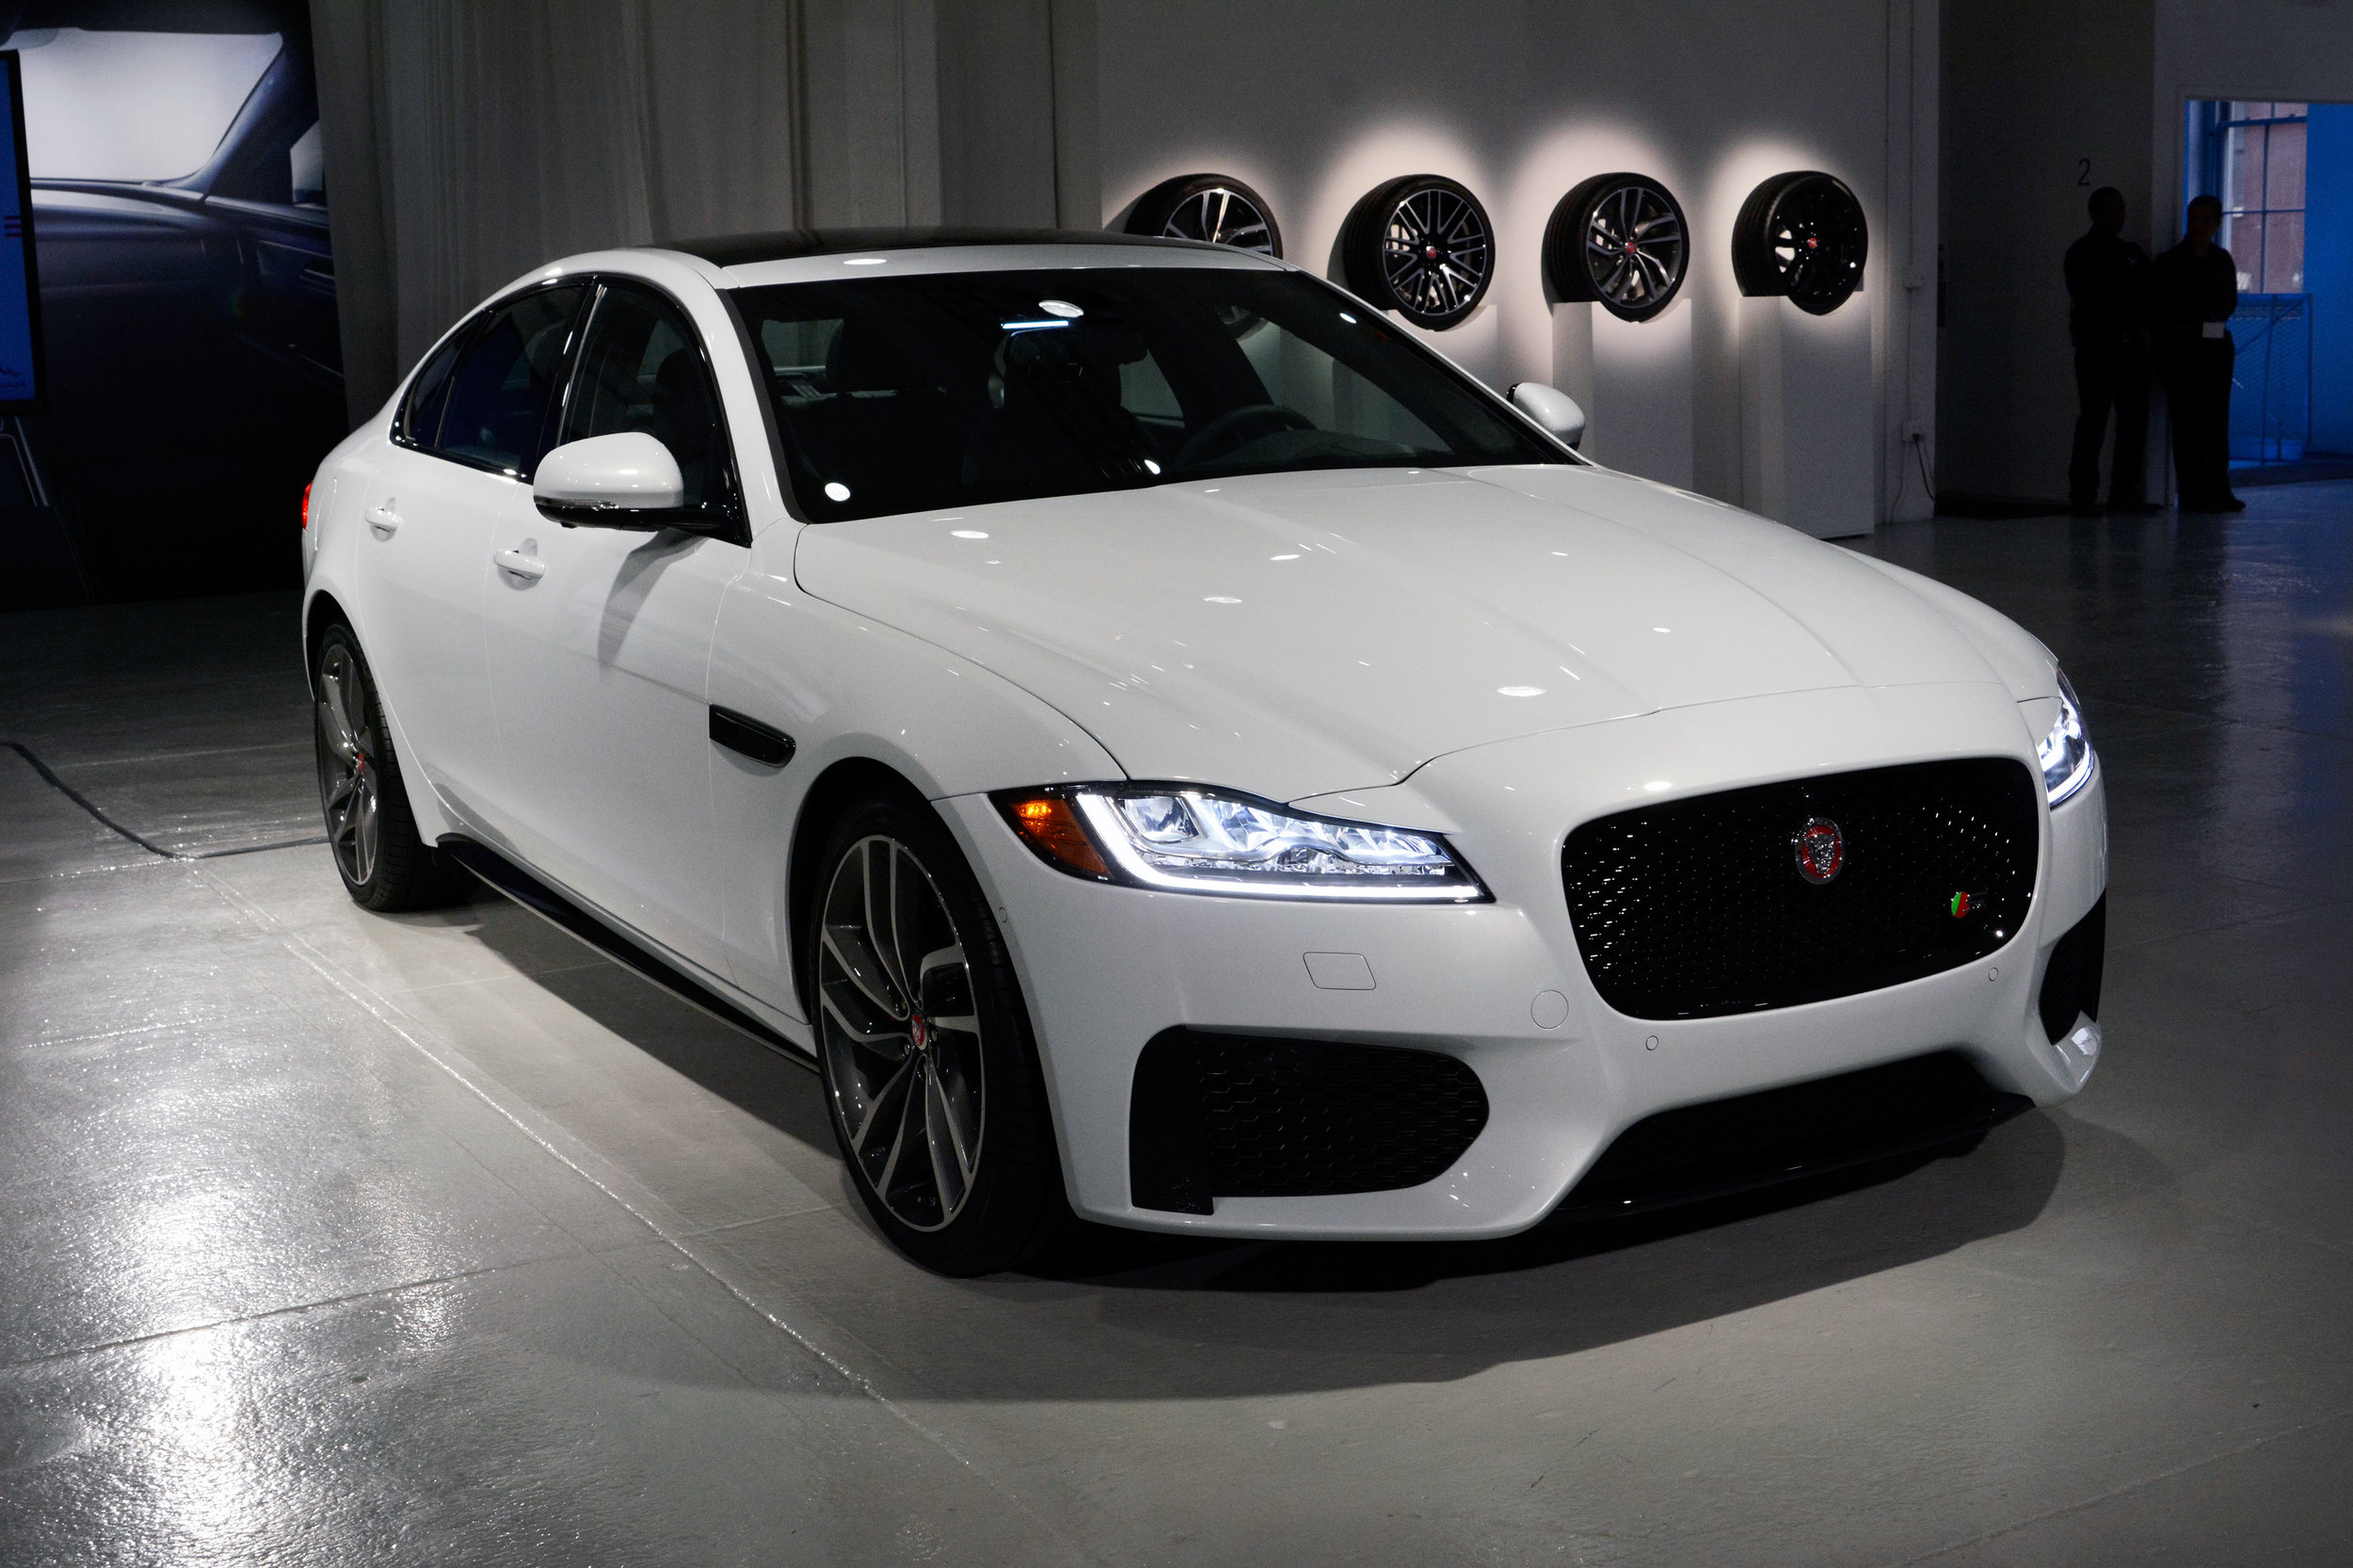 s new xf united the goes britain from states news for in jaguar all awd on sale